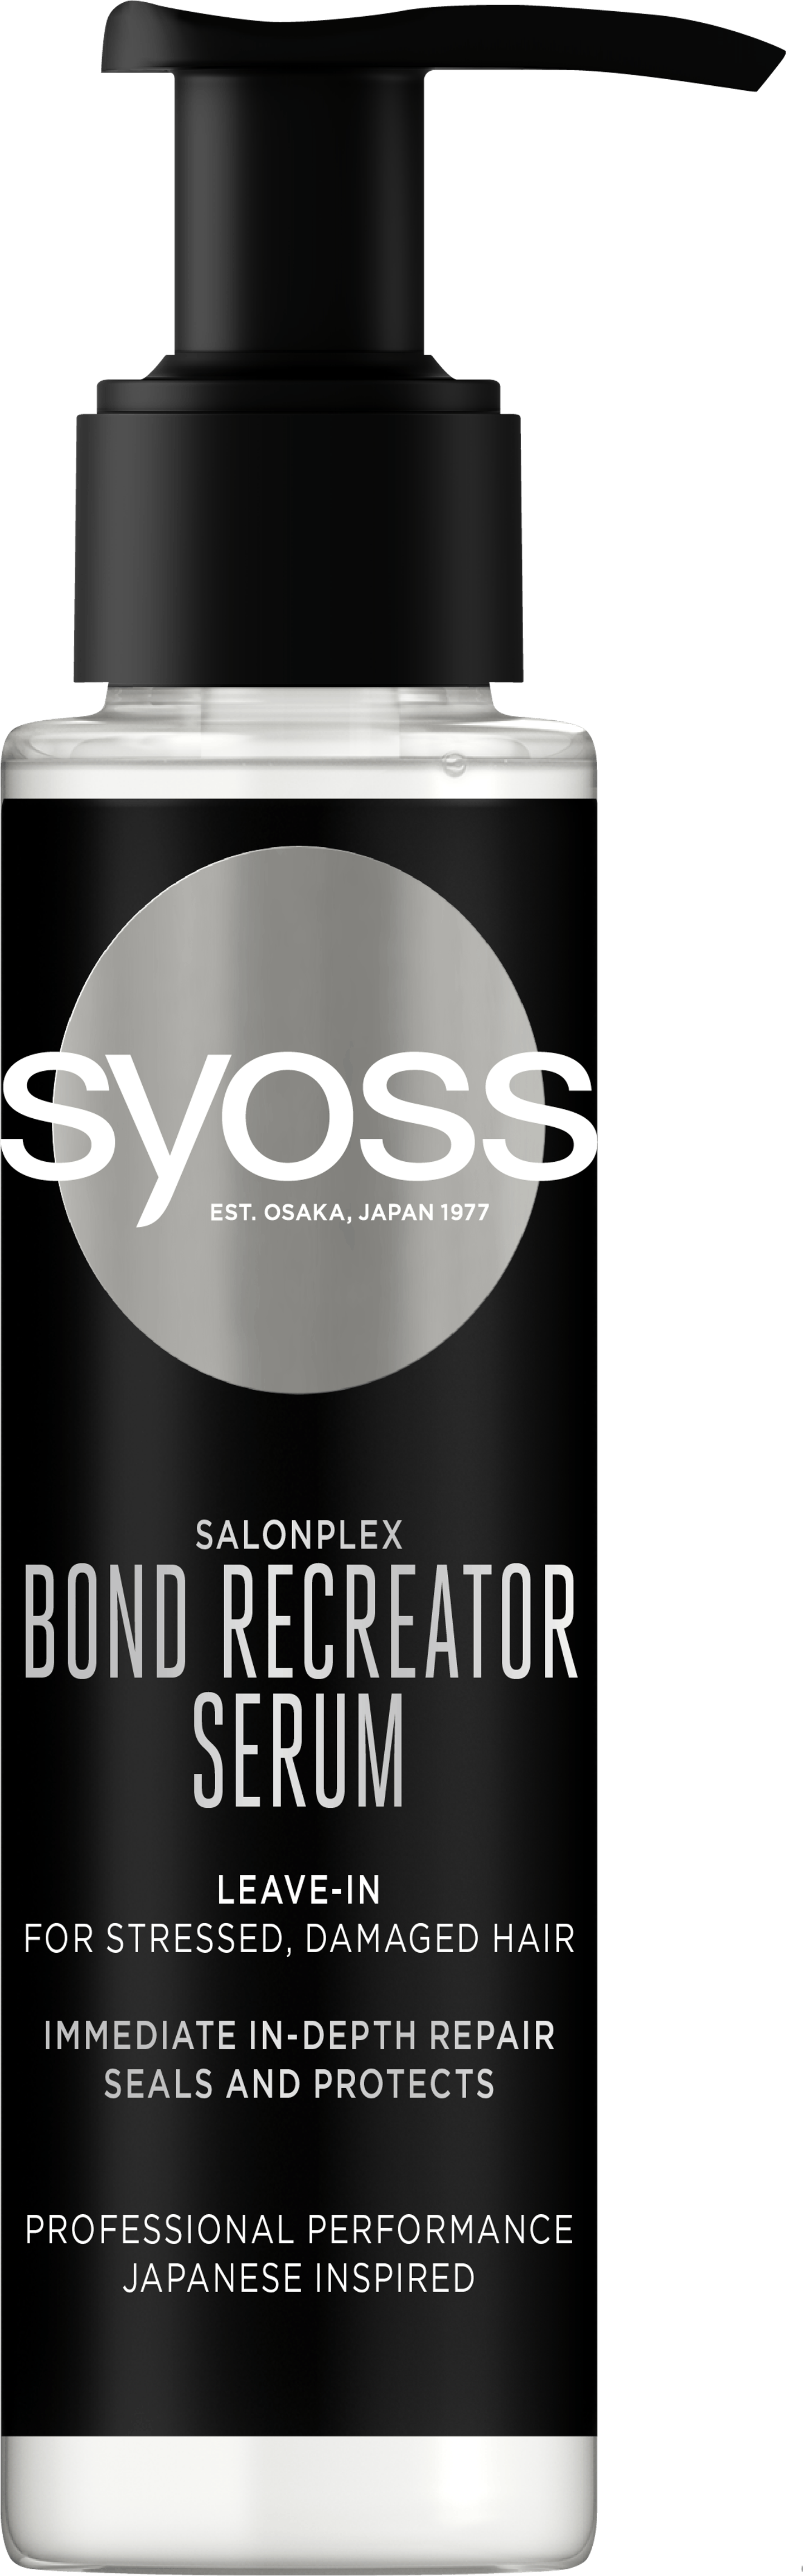 Syoss Salonplex Bond Recreator Serum